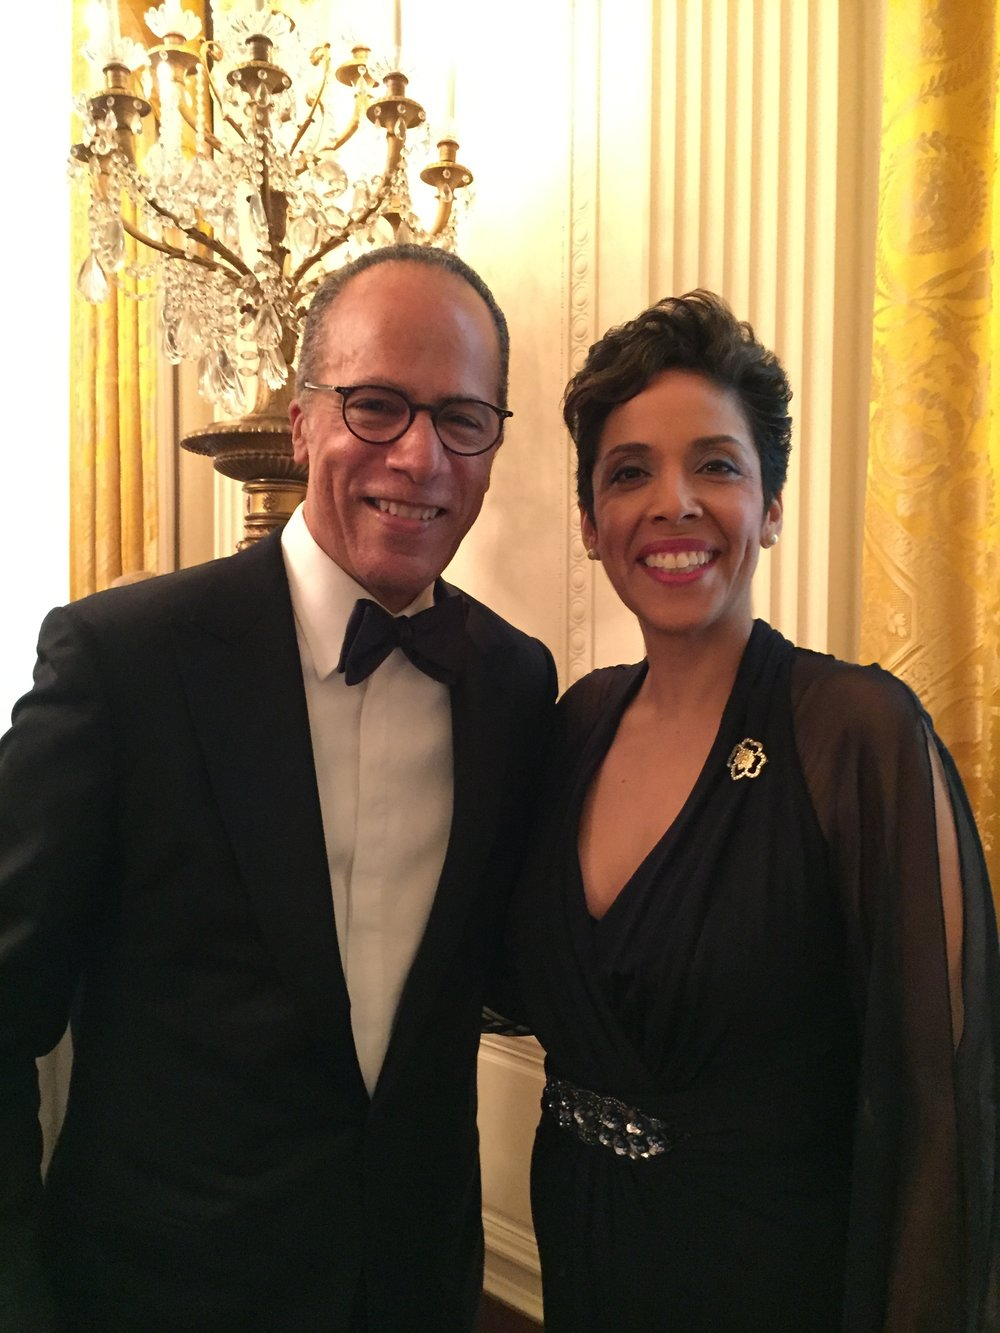 News Anchor Lester Holt with Anna Maria Chávez